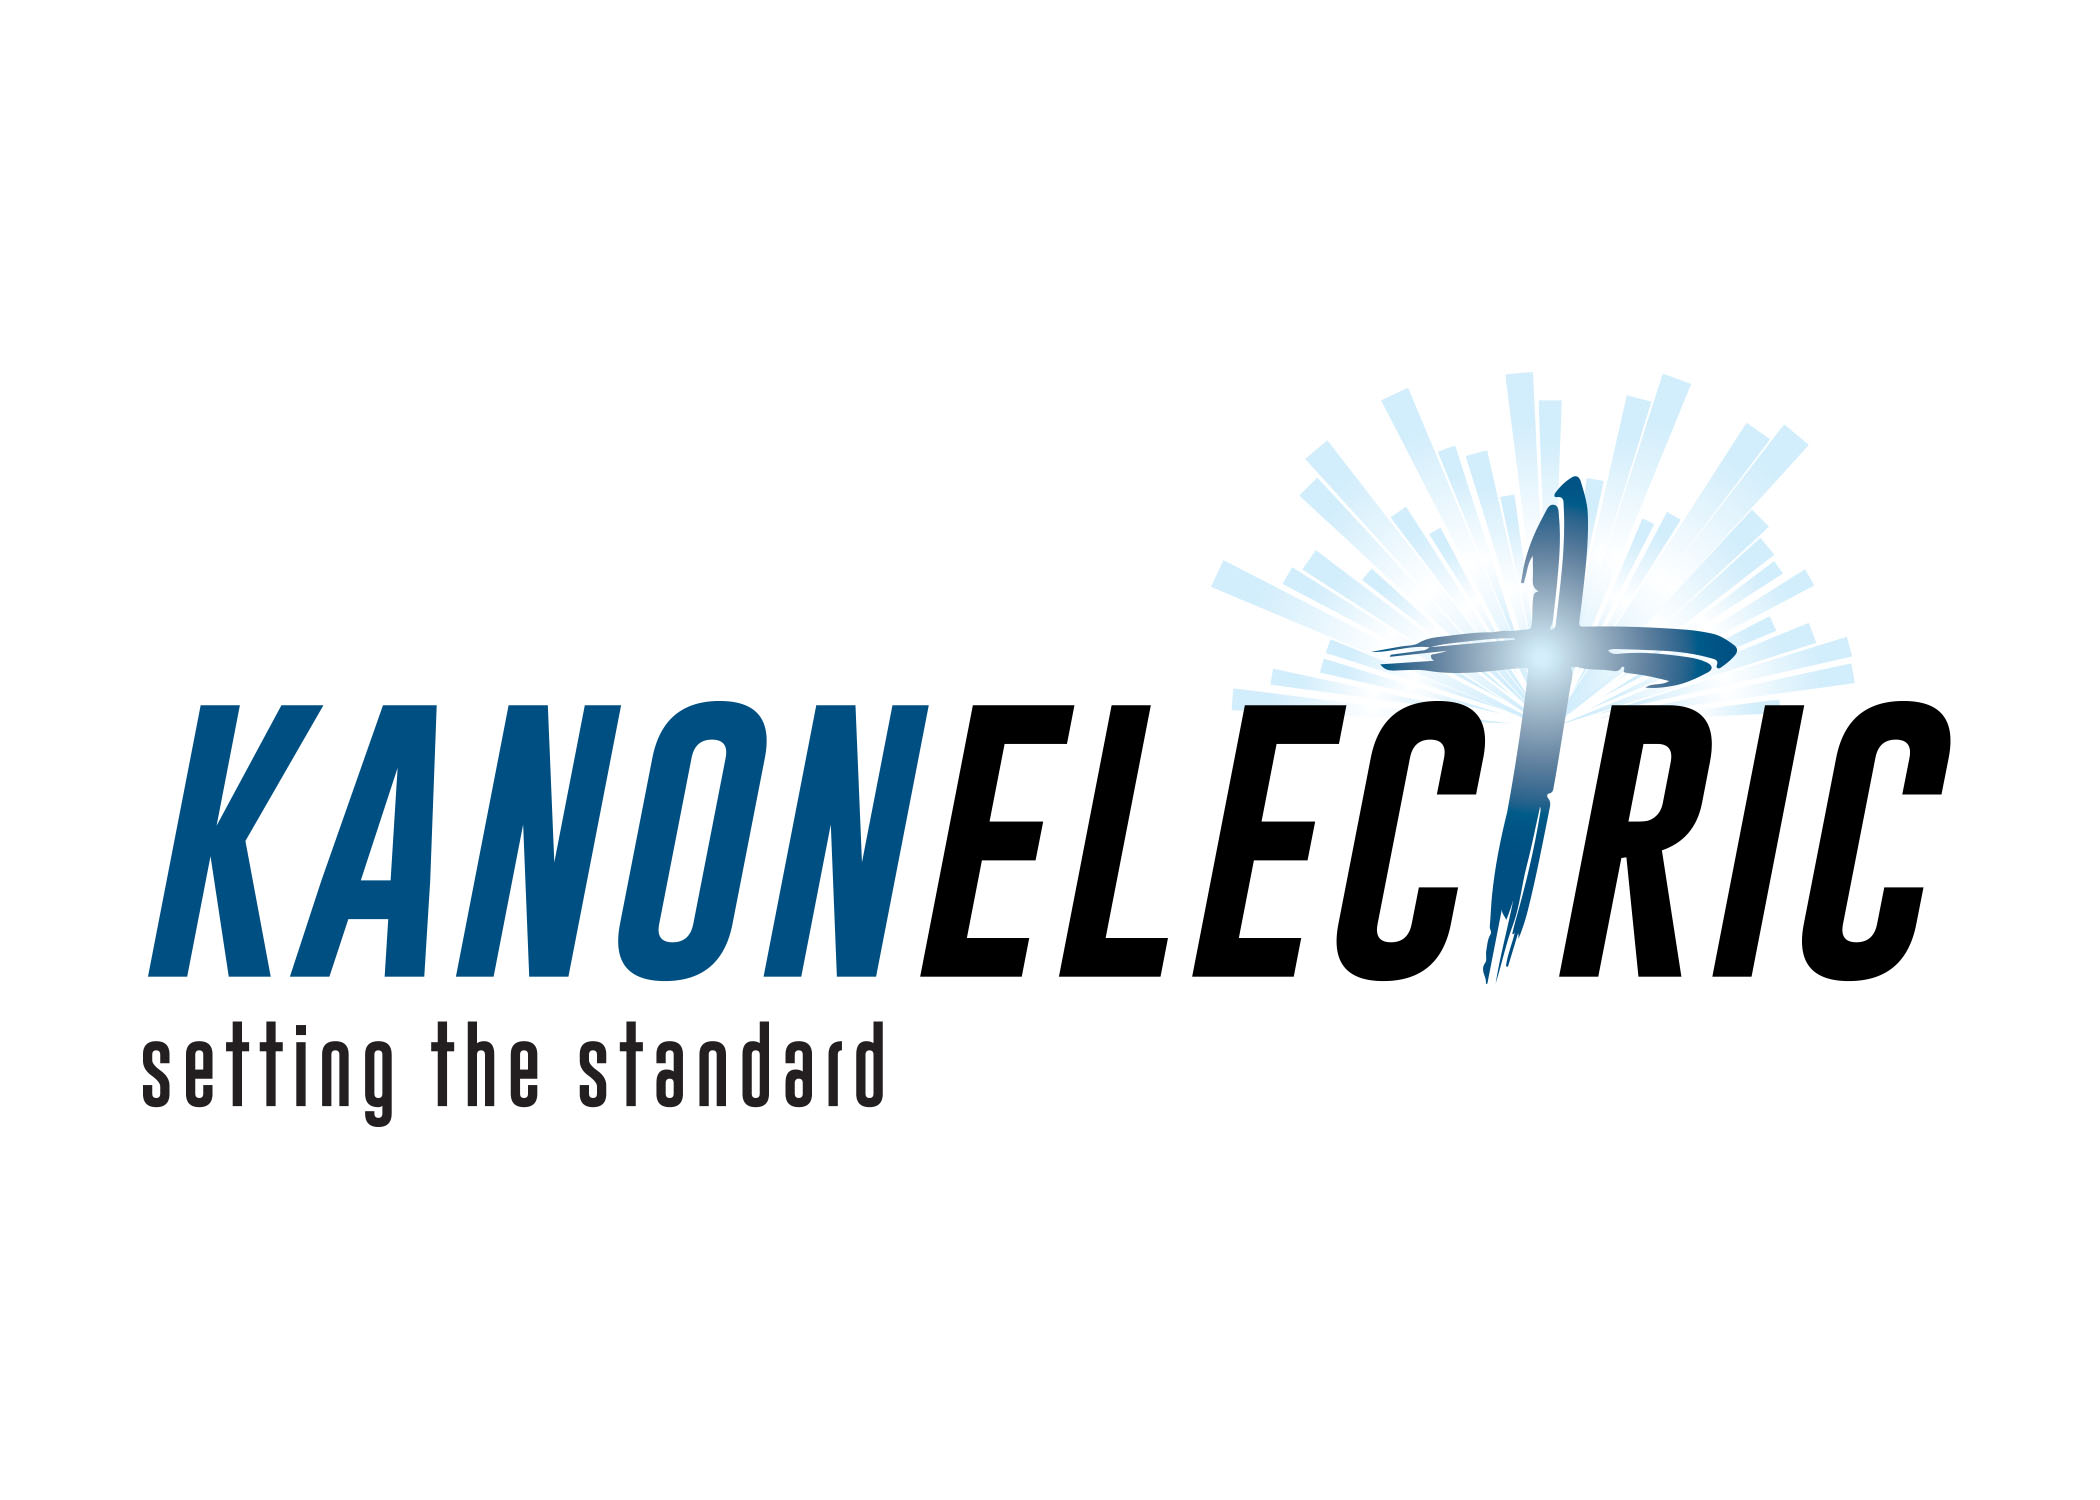 Cross Logo_Horizontal_Kanon Electric